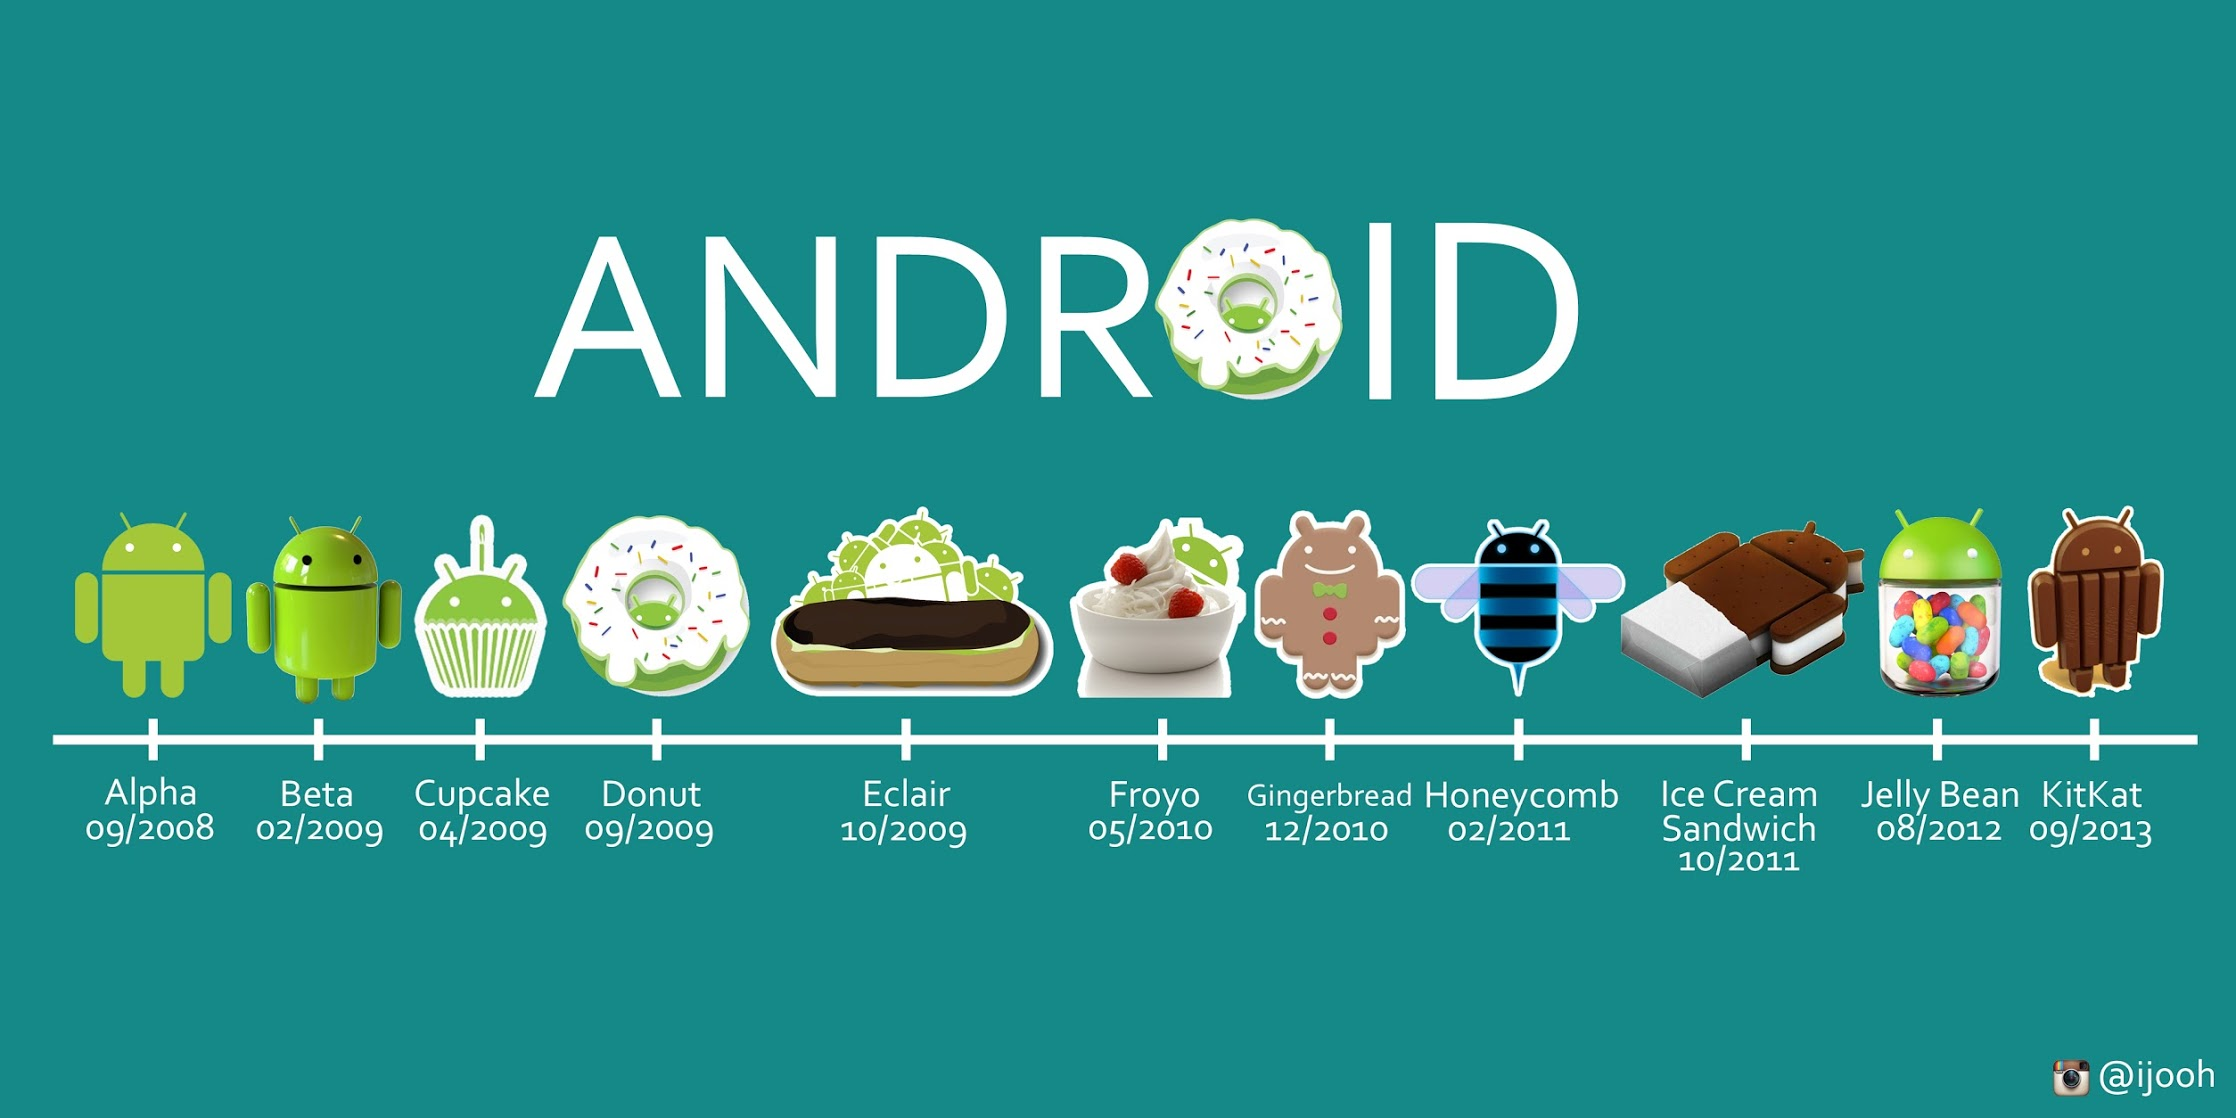 android-nombres-postres.jpg